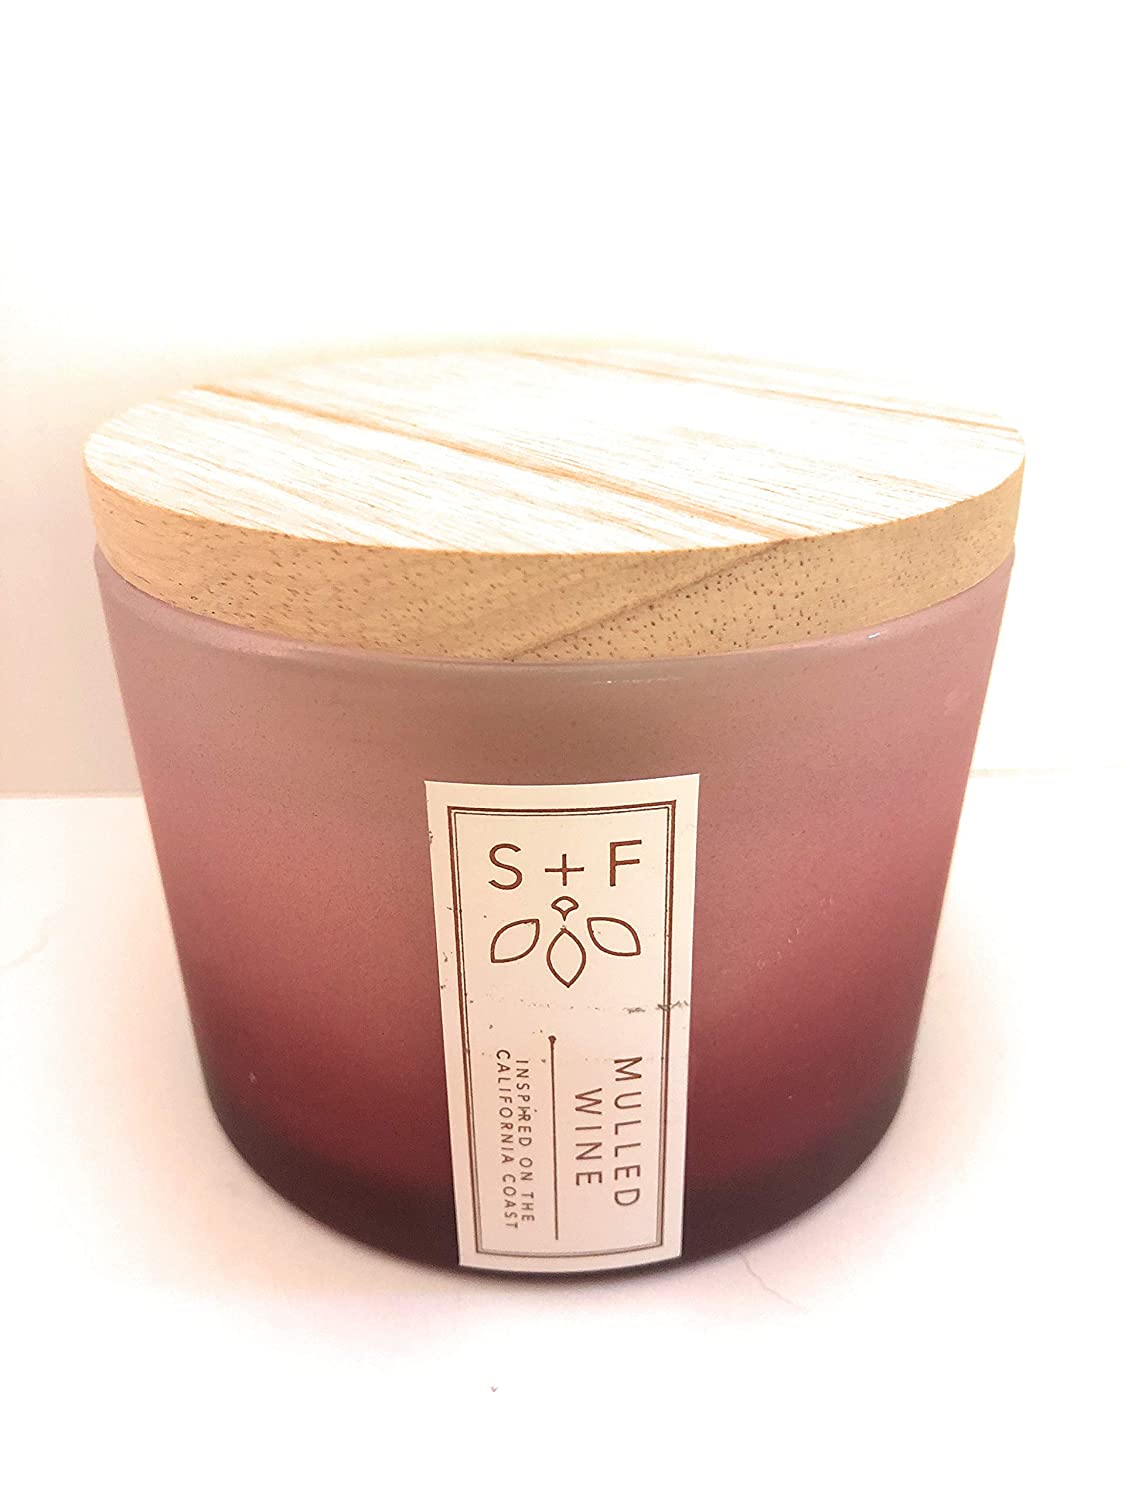 Sand And Fog Mulled Wine Candle with Lid 12 Oz